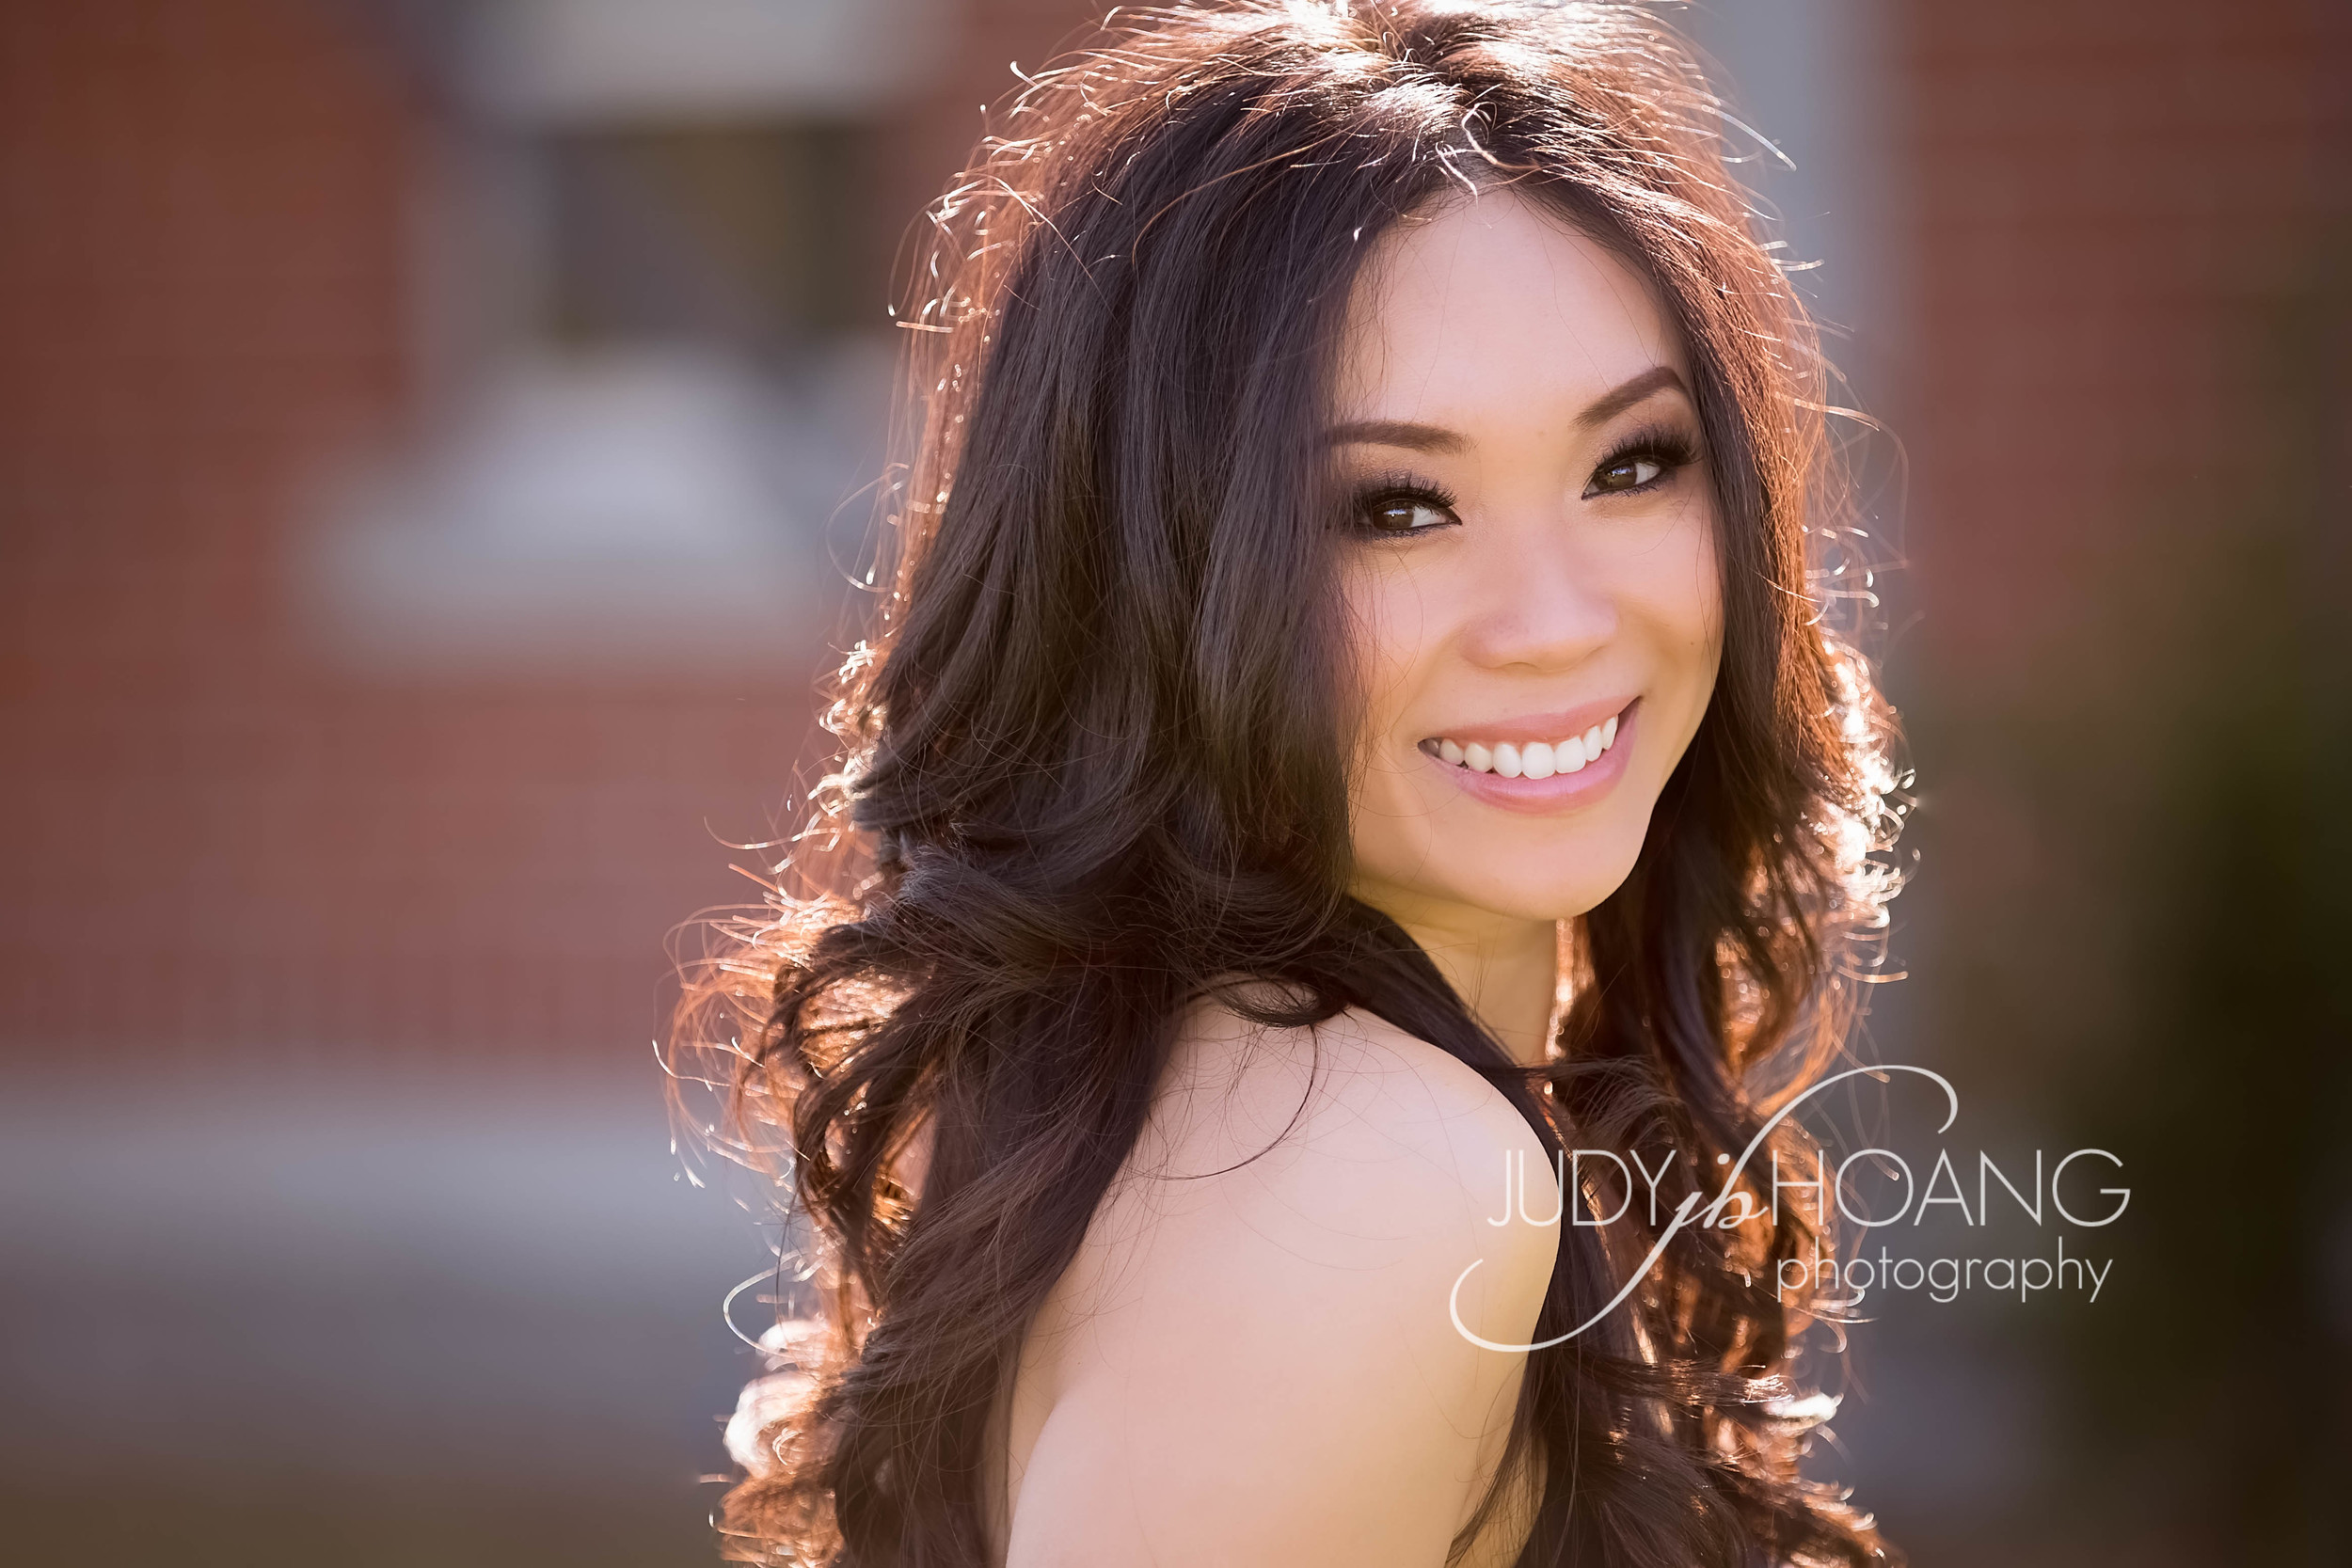 Judy Hoang Photography - Sherry-2.jpg